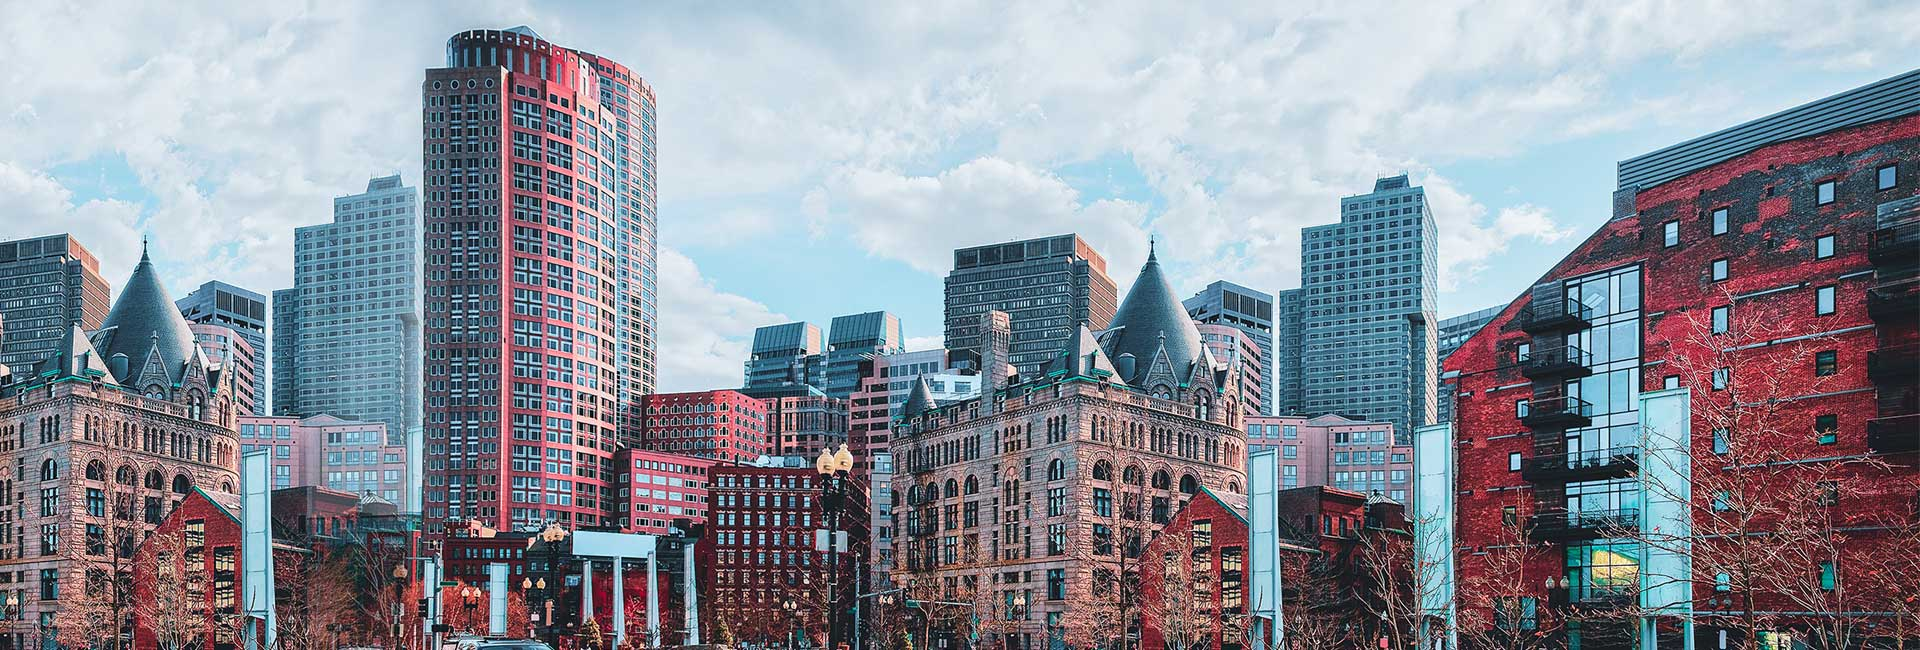 Cheap Flights from Chicago to Boston, ORD to BOS Flights